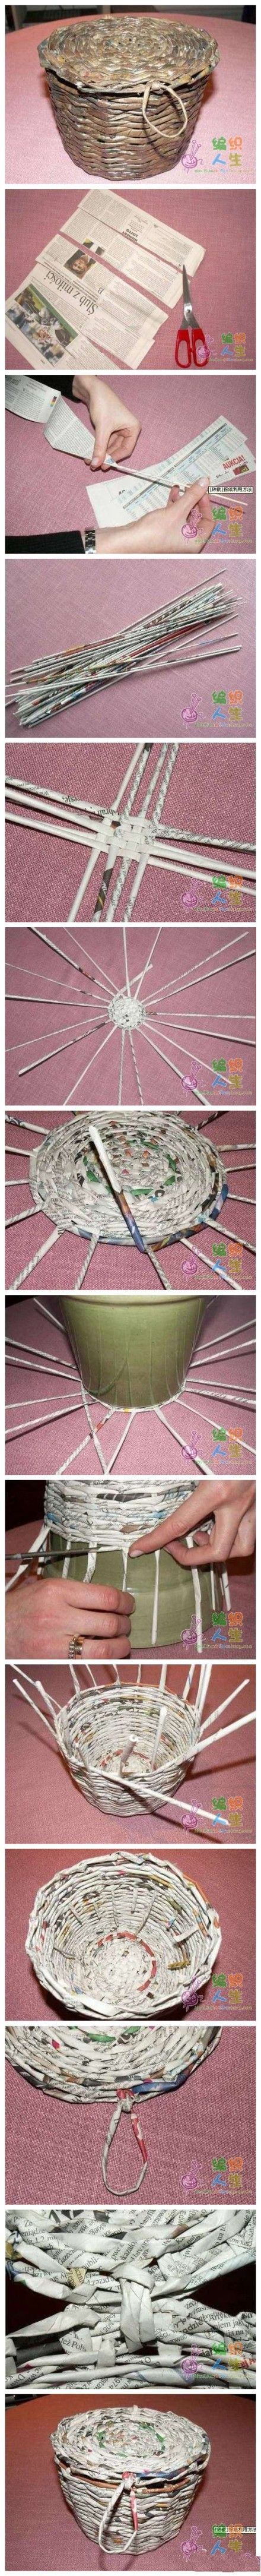 Picture tute of newspaper basket making